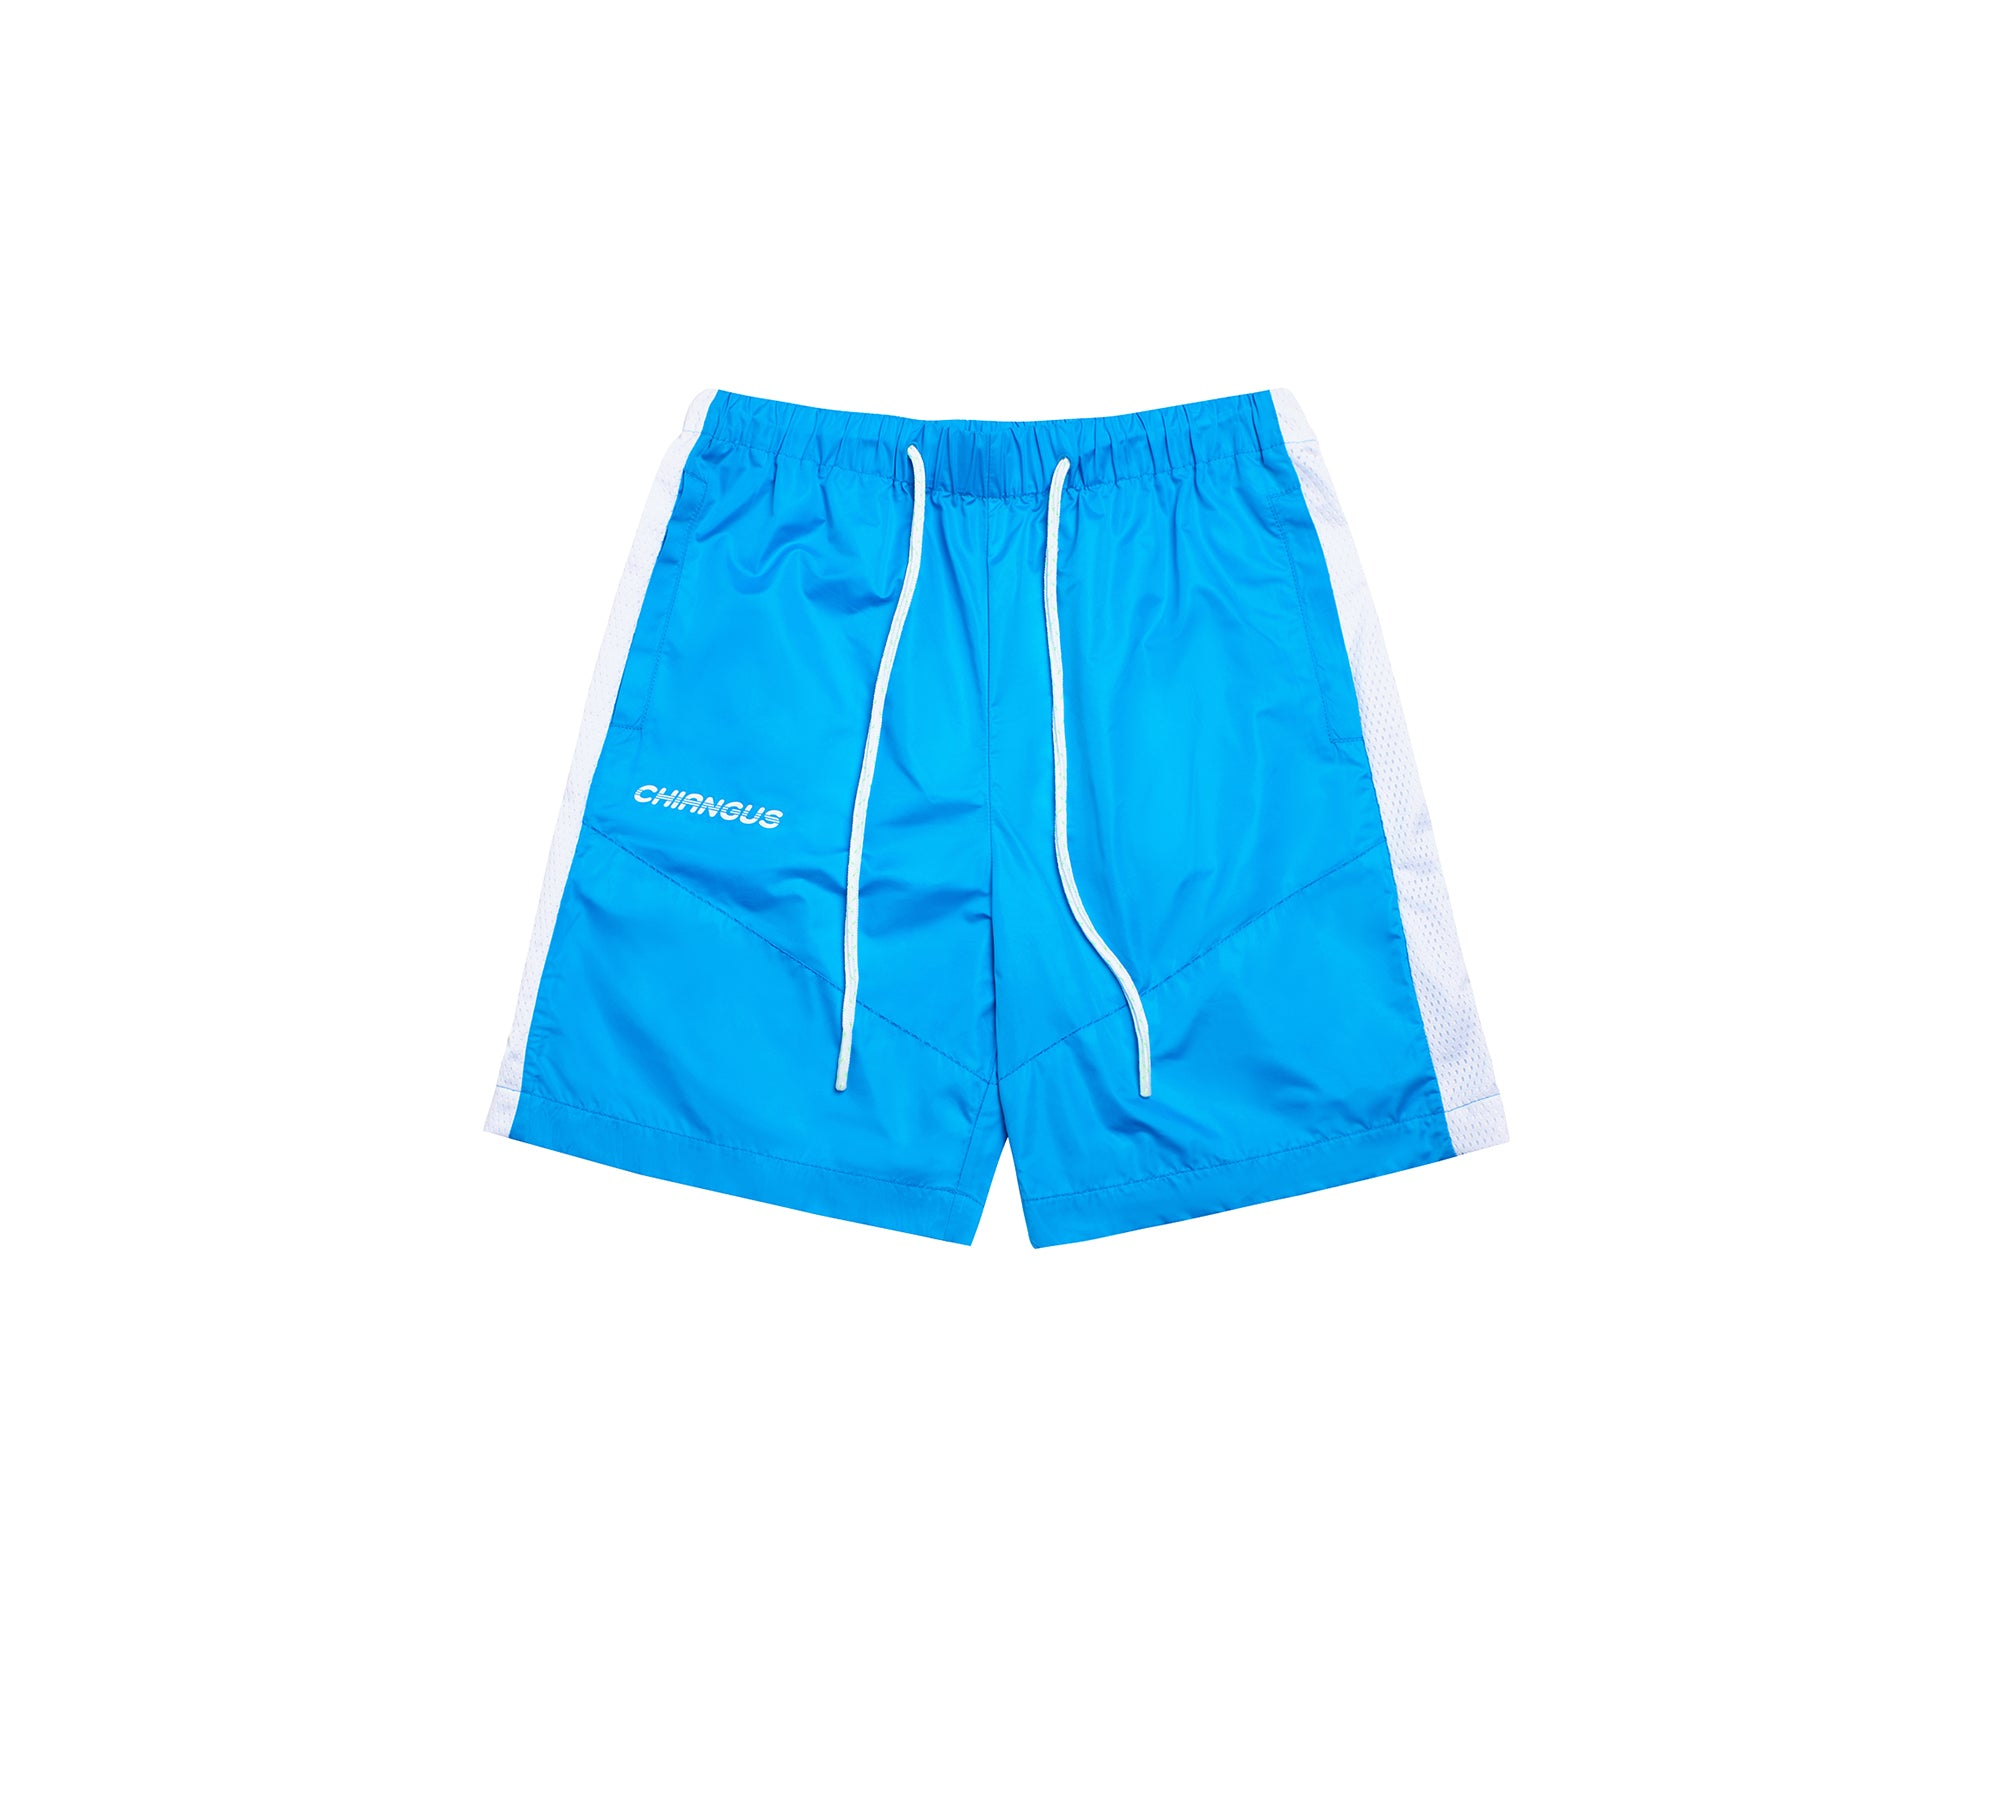 PATCHWORK SPORT SHORTS